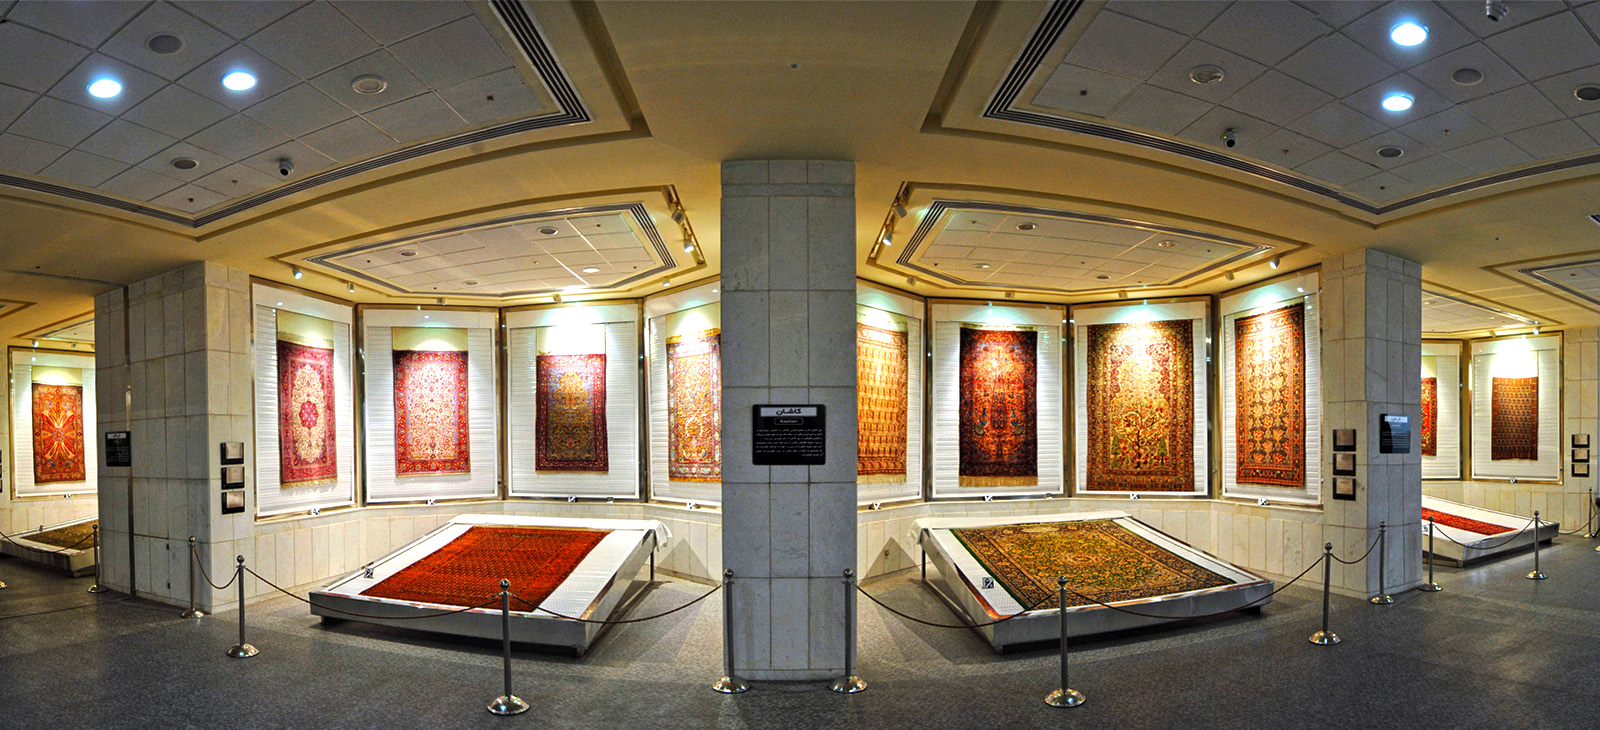 carpet museum, Things to do in Tehran